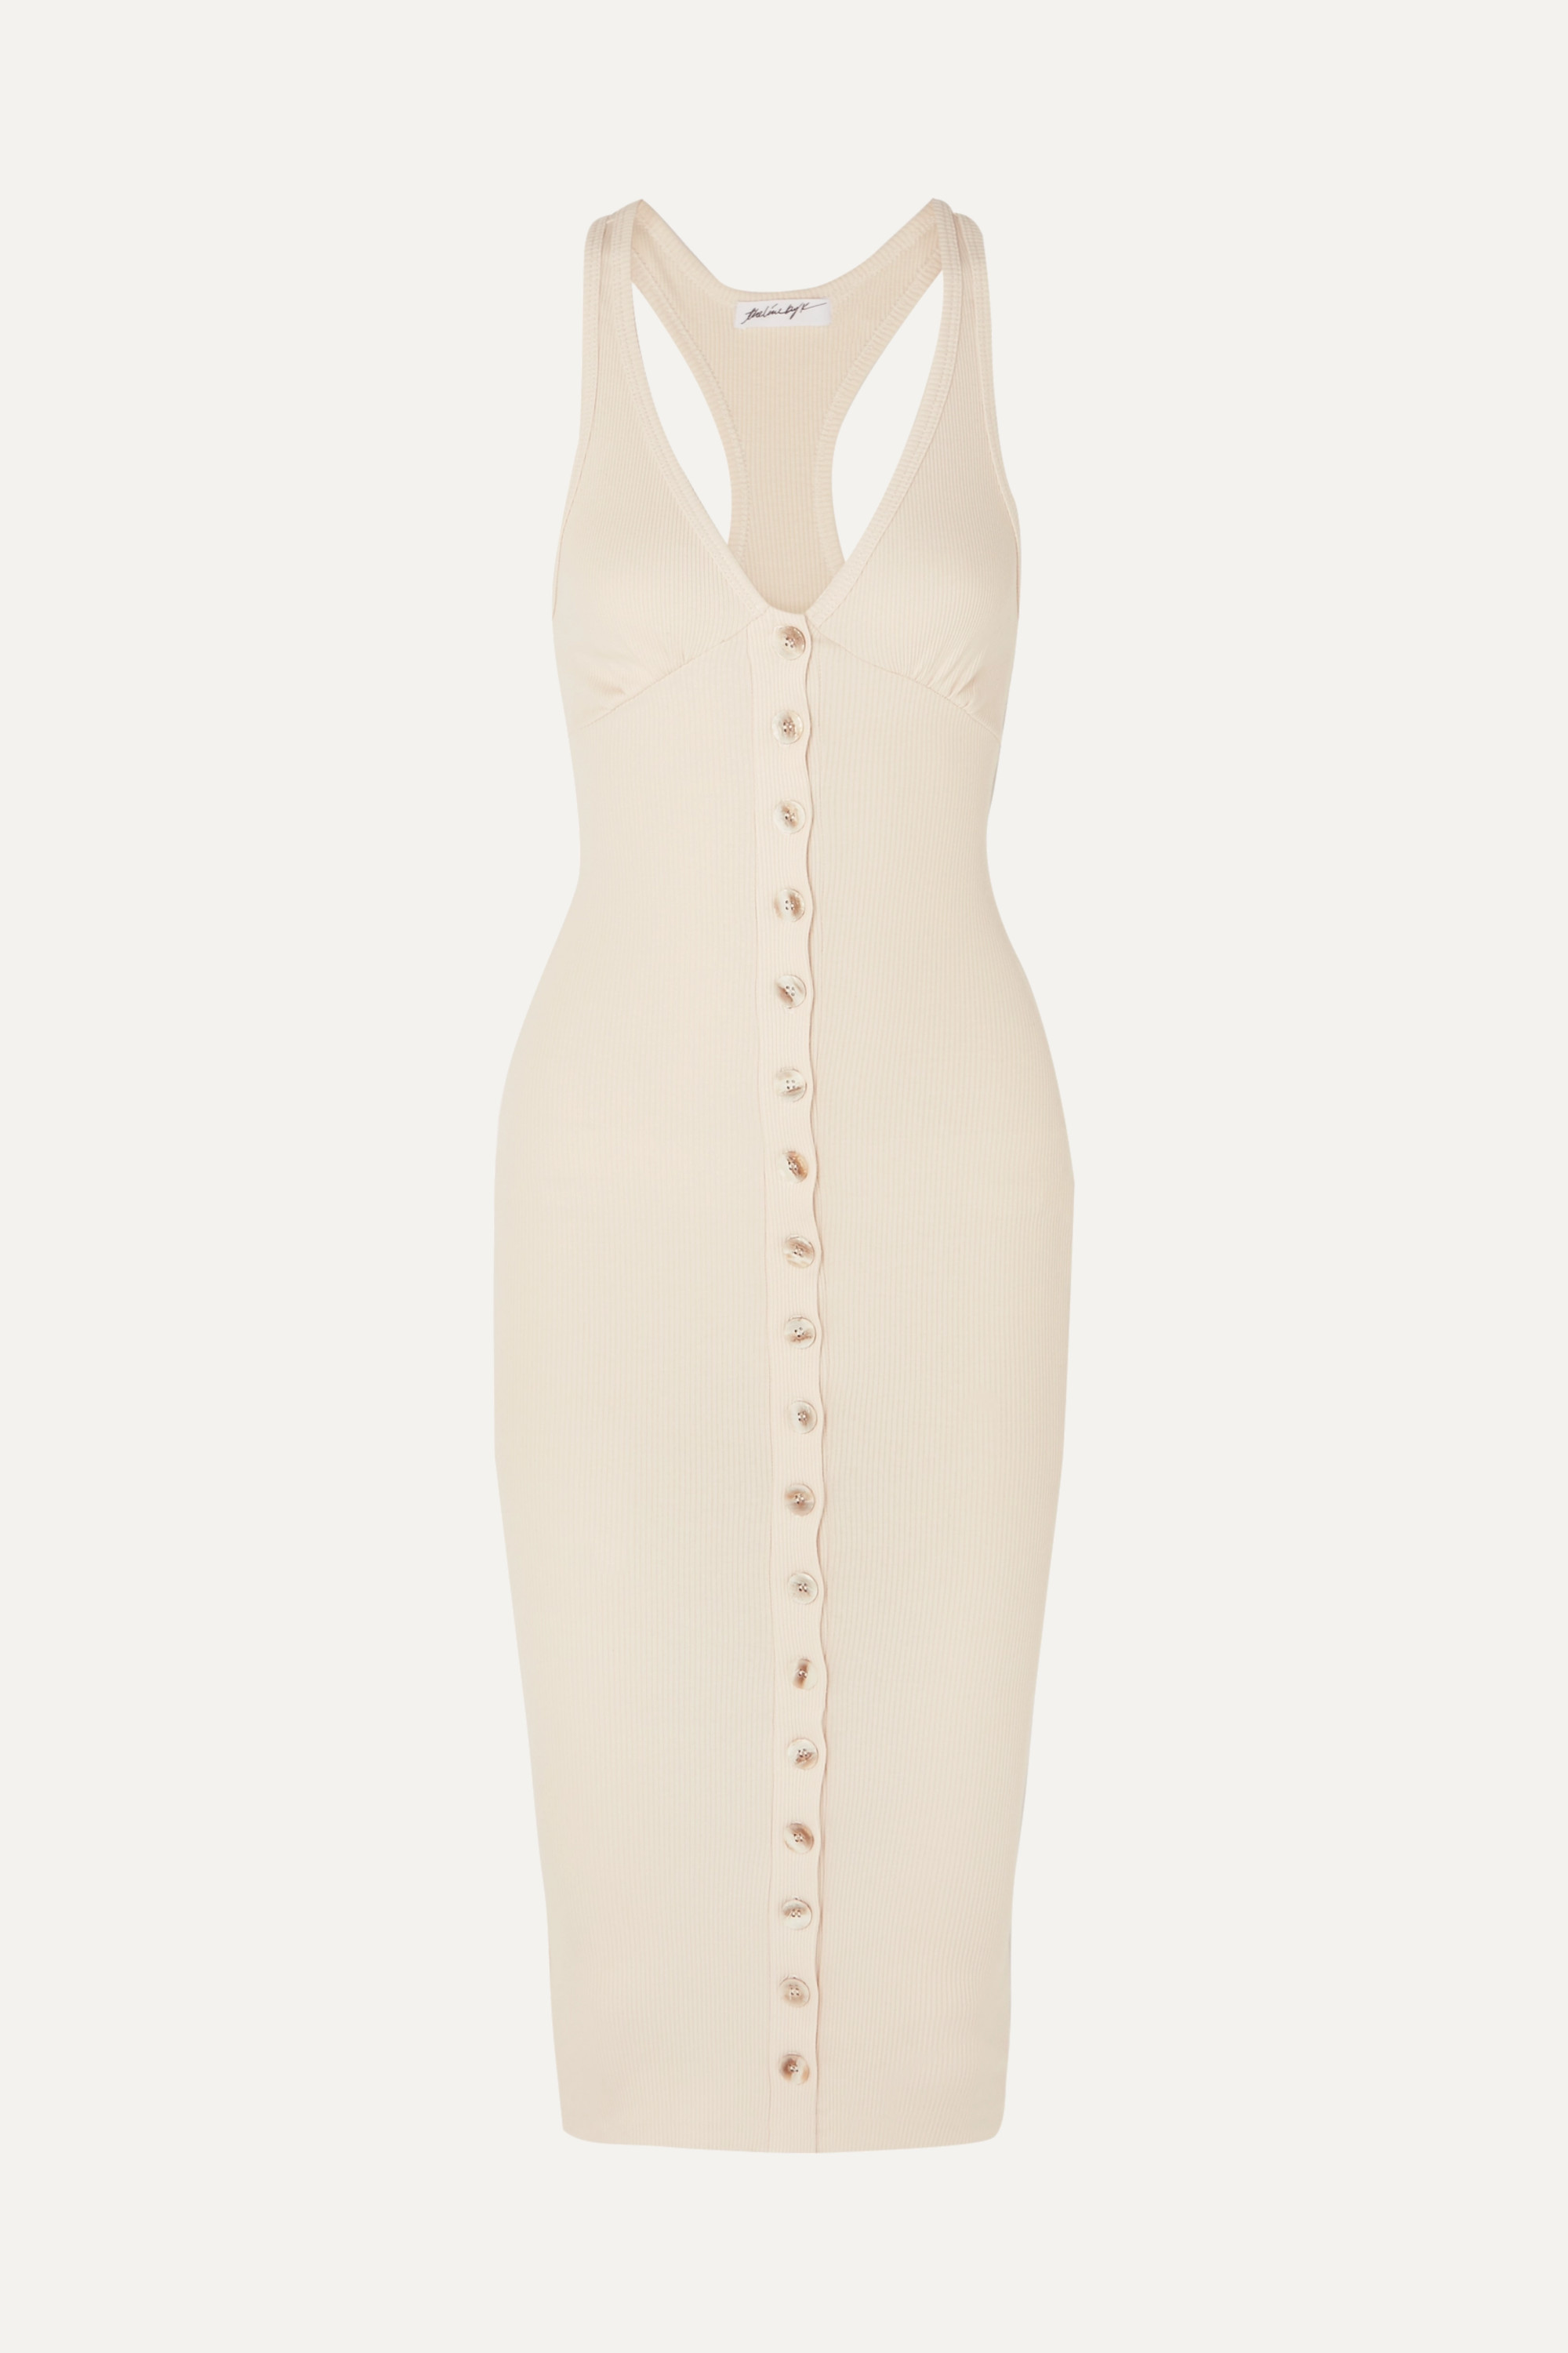 The Line By K Harper ribbed stretch-cotton jersey dress